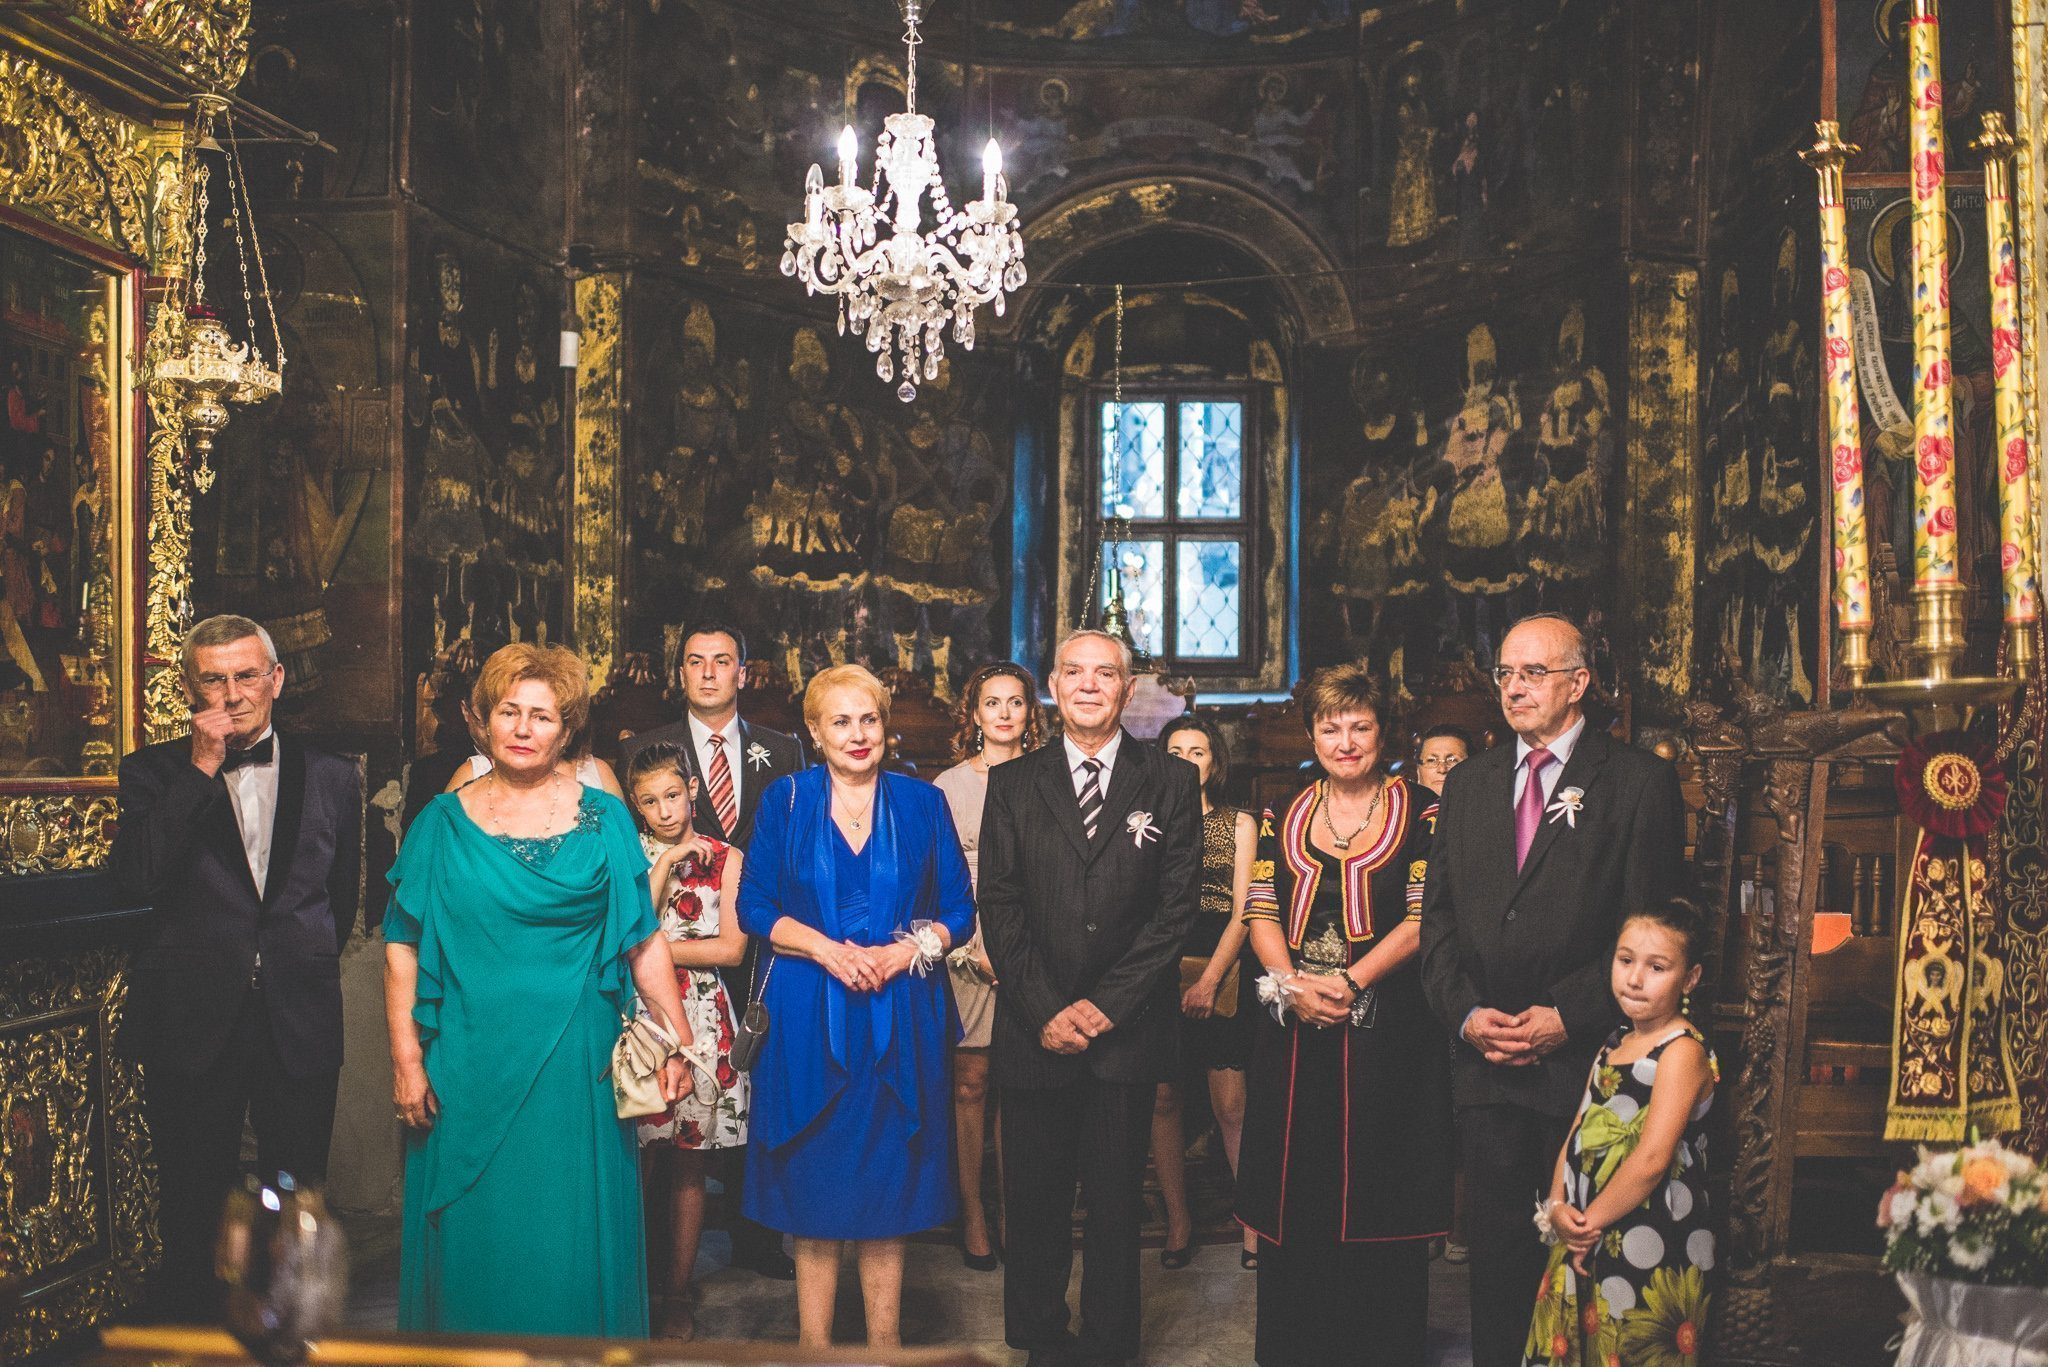 The couple's family gather in the gilded surroundings of the monastery